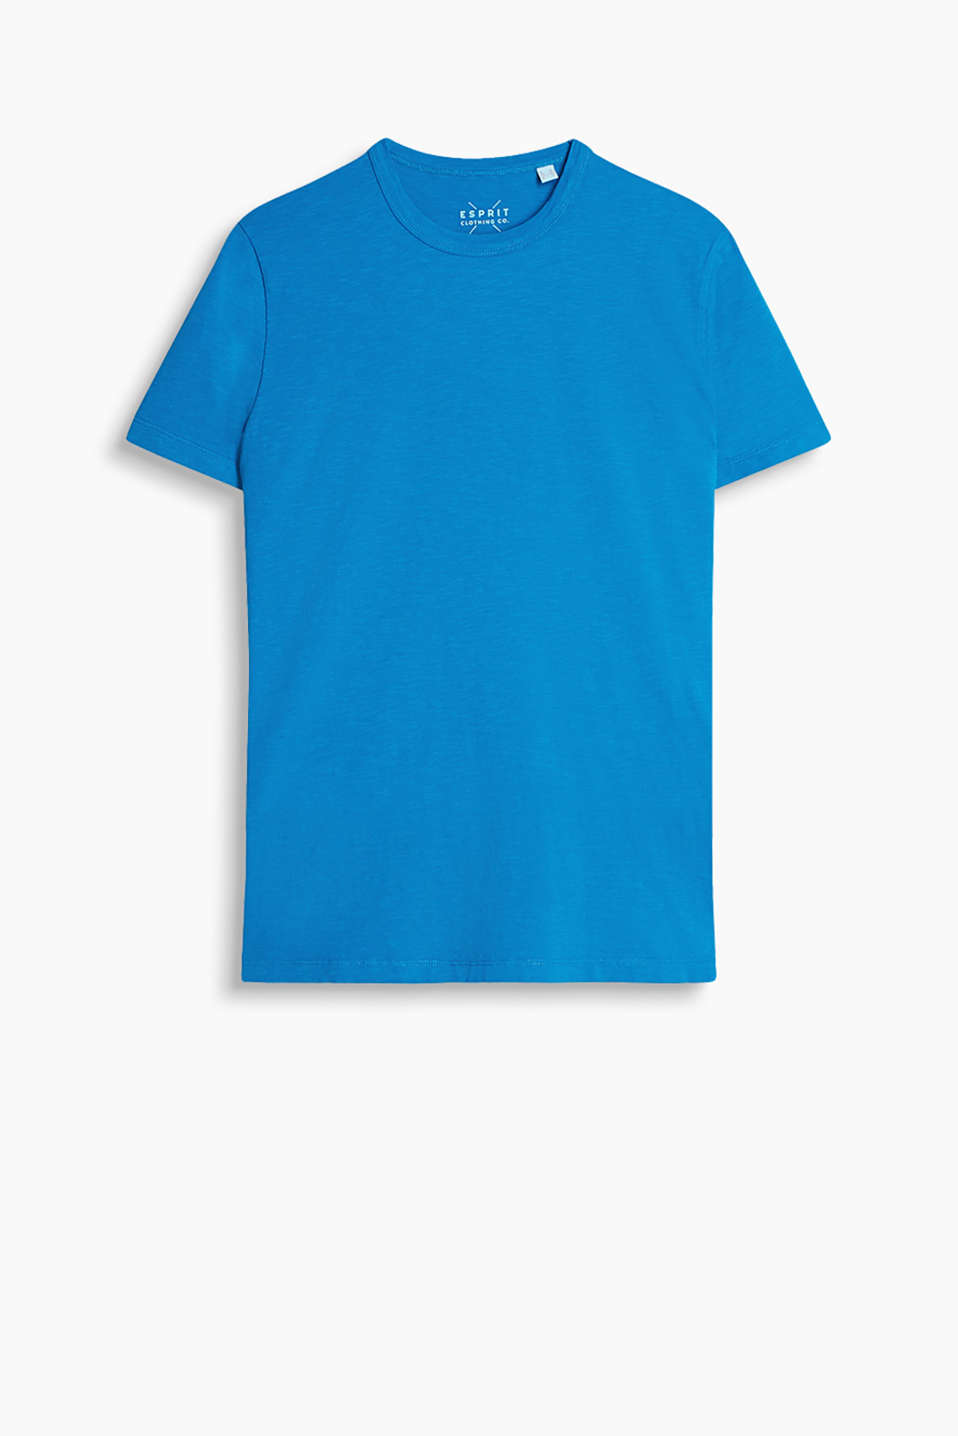 A fashion basic: T-shirt with a high-quality dye